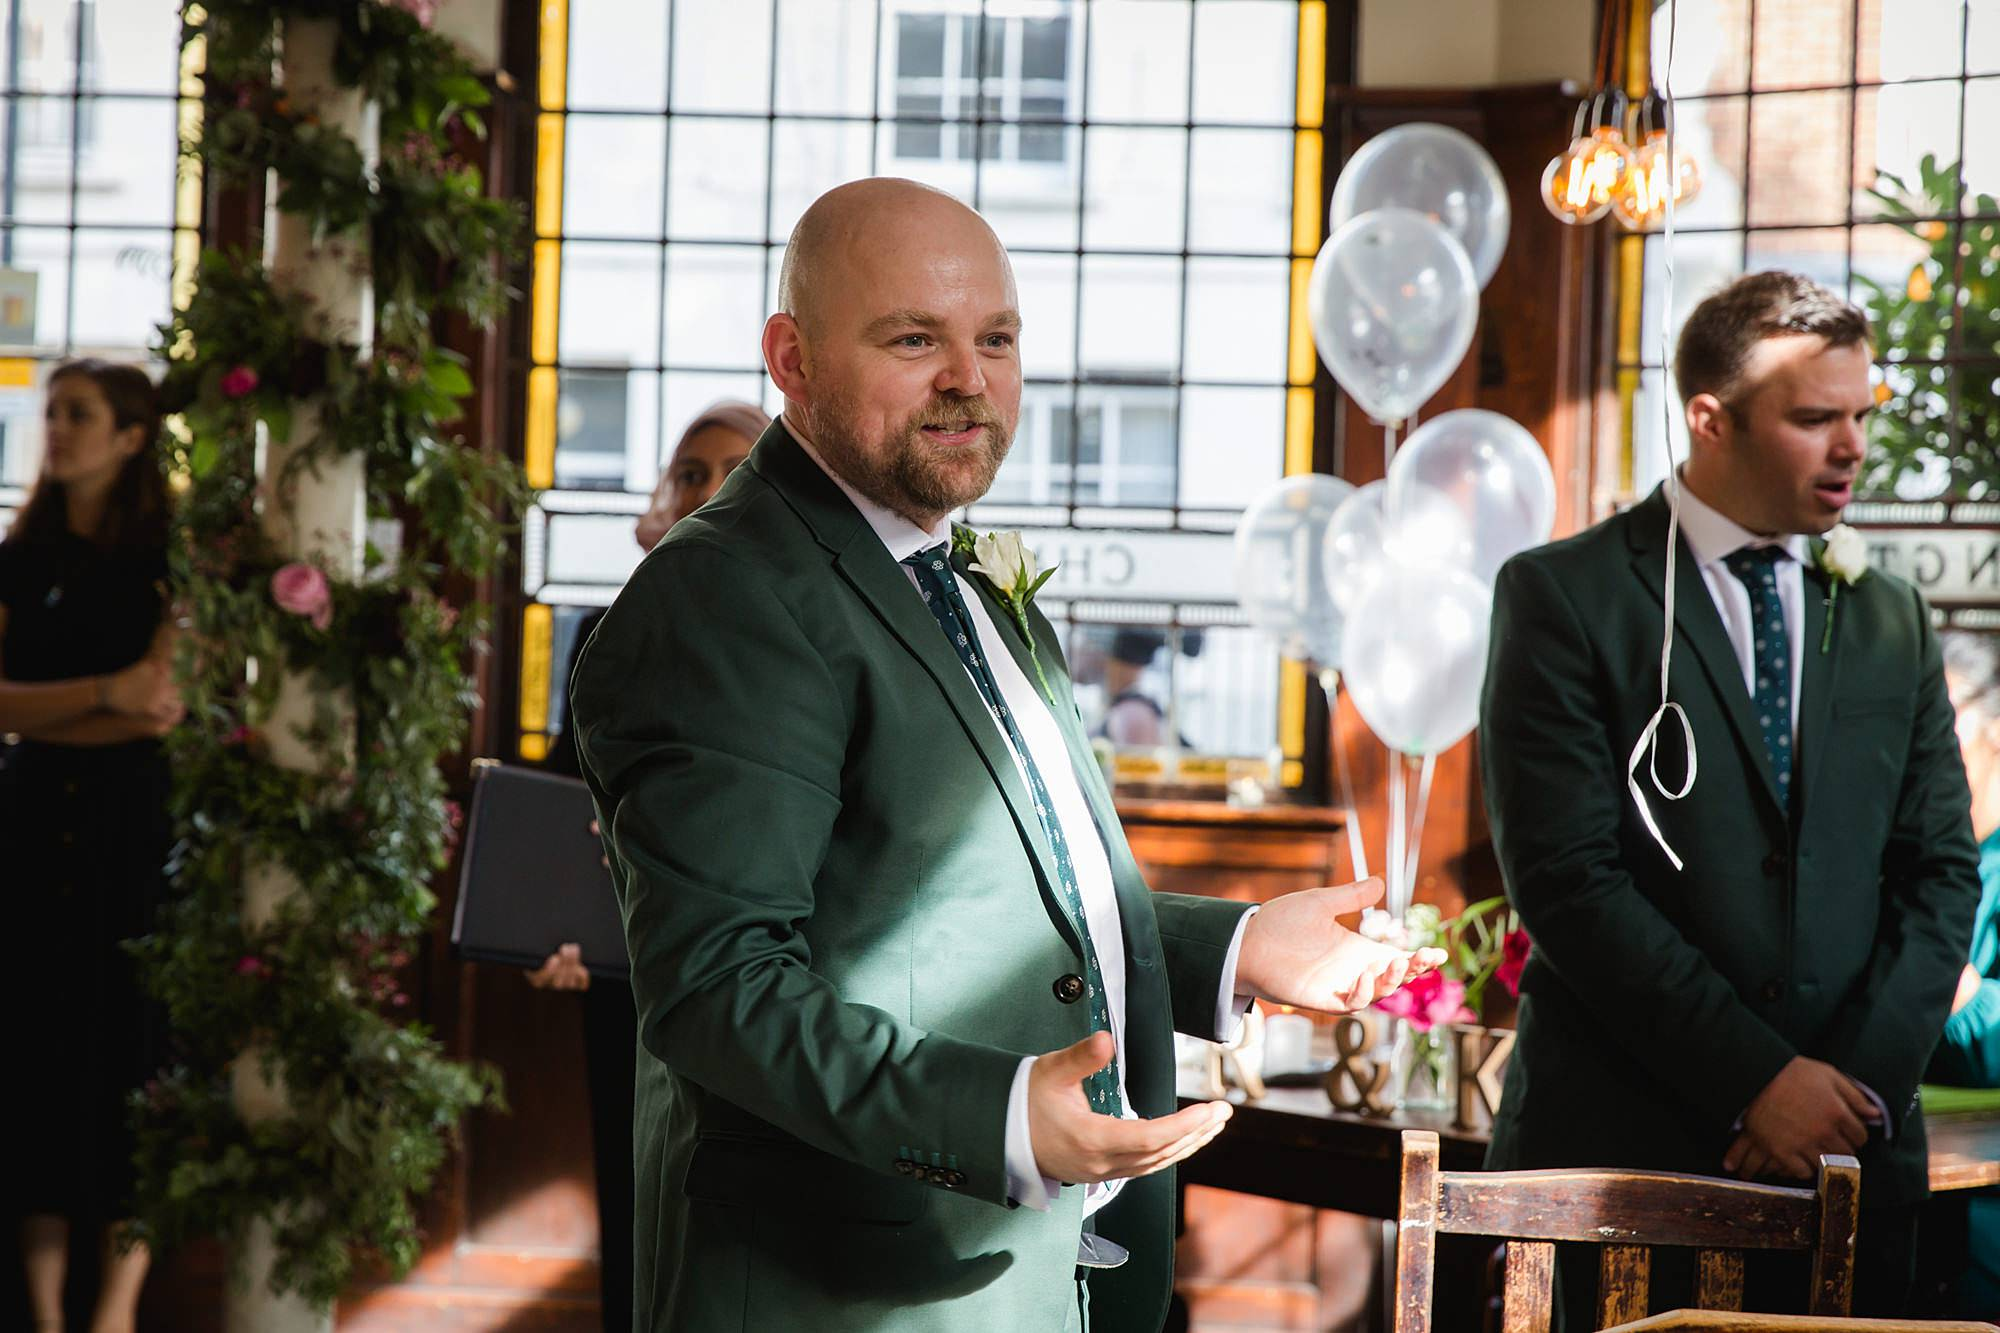 Prince albert camden wedding groom chats to guests